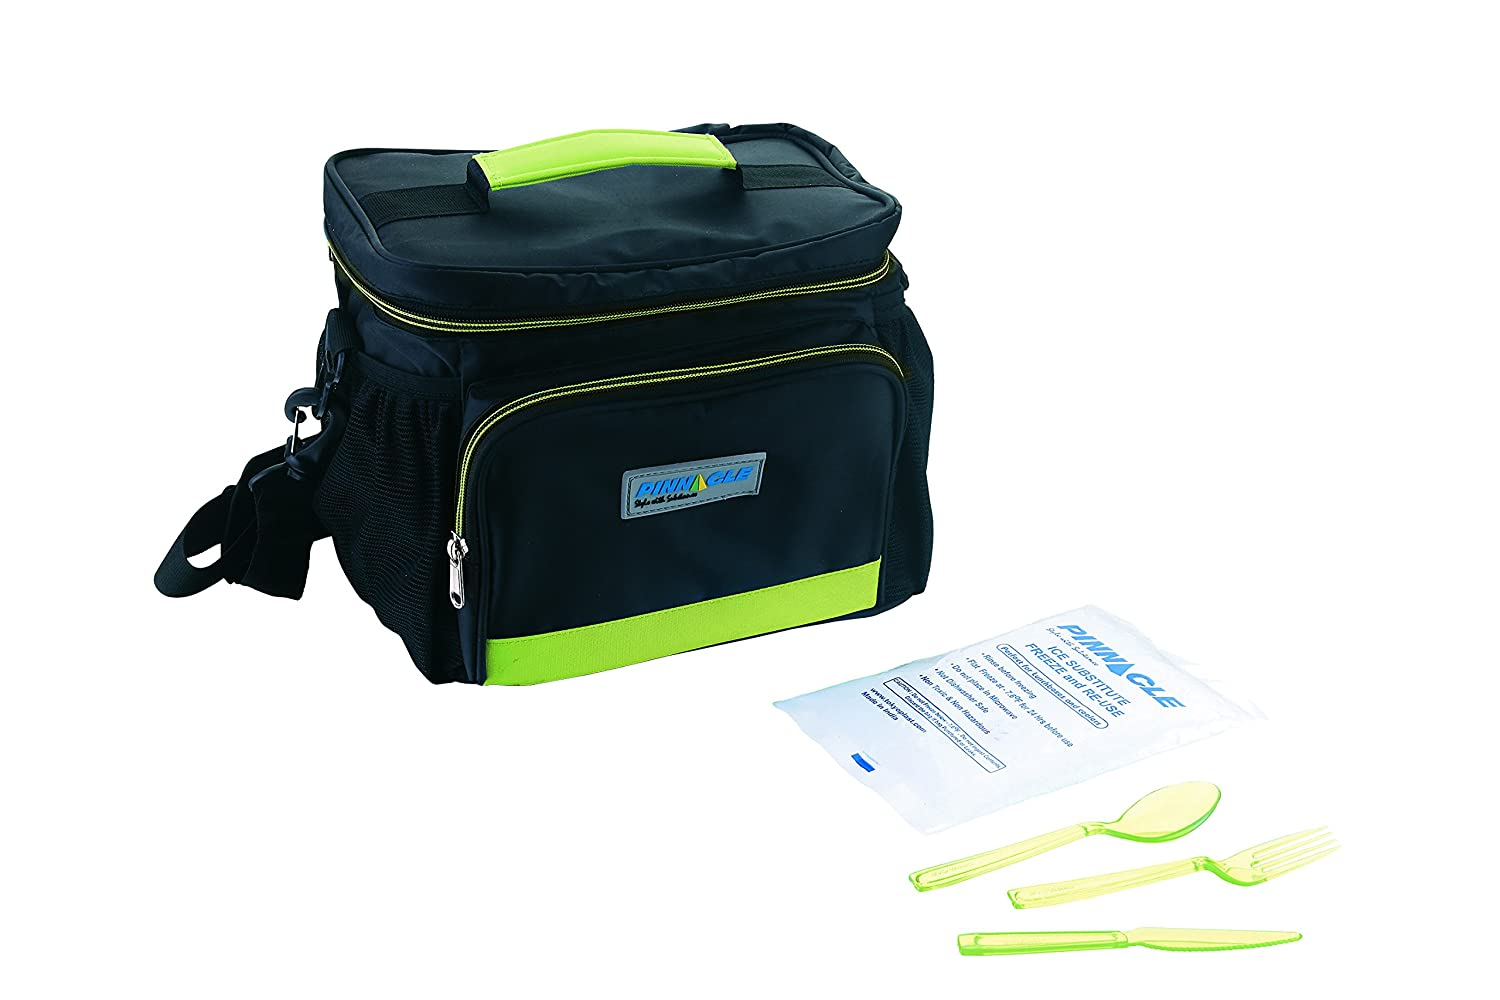 Durable Nylon, Double Zipper – Black & Green Lunch Bag Kit